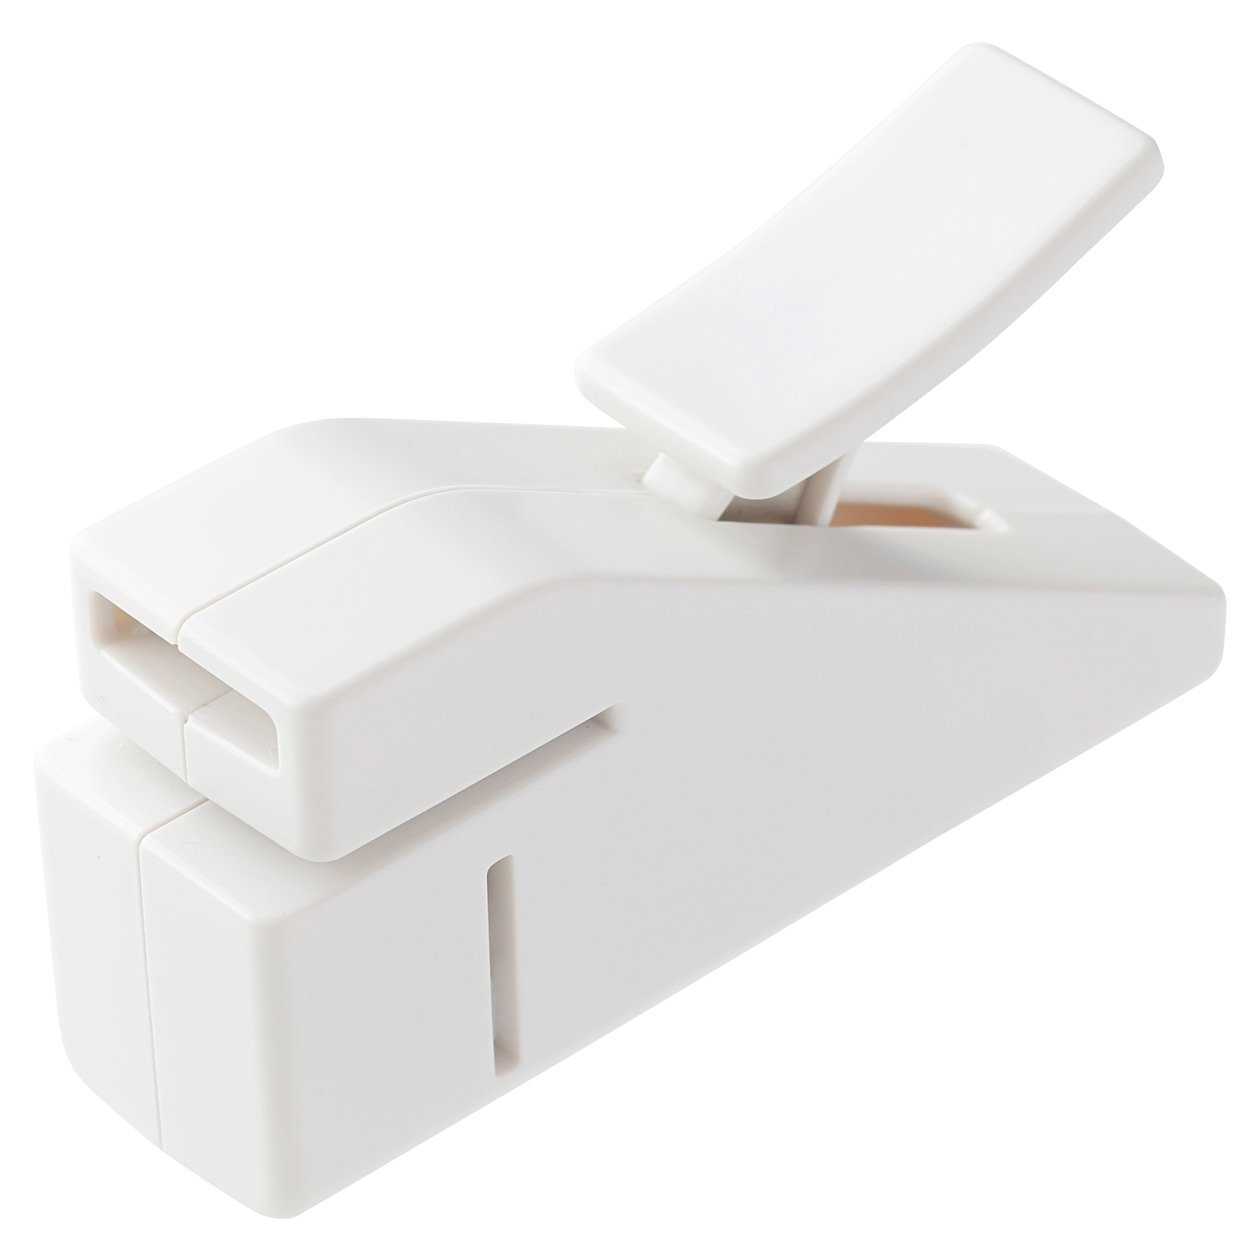 MUJI Stapleless Stapler White by Muji Art150328